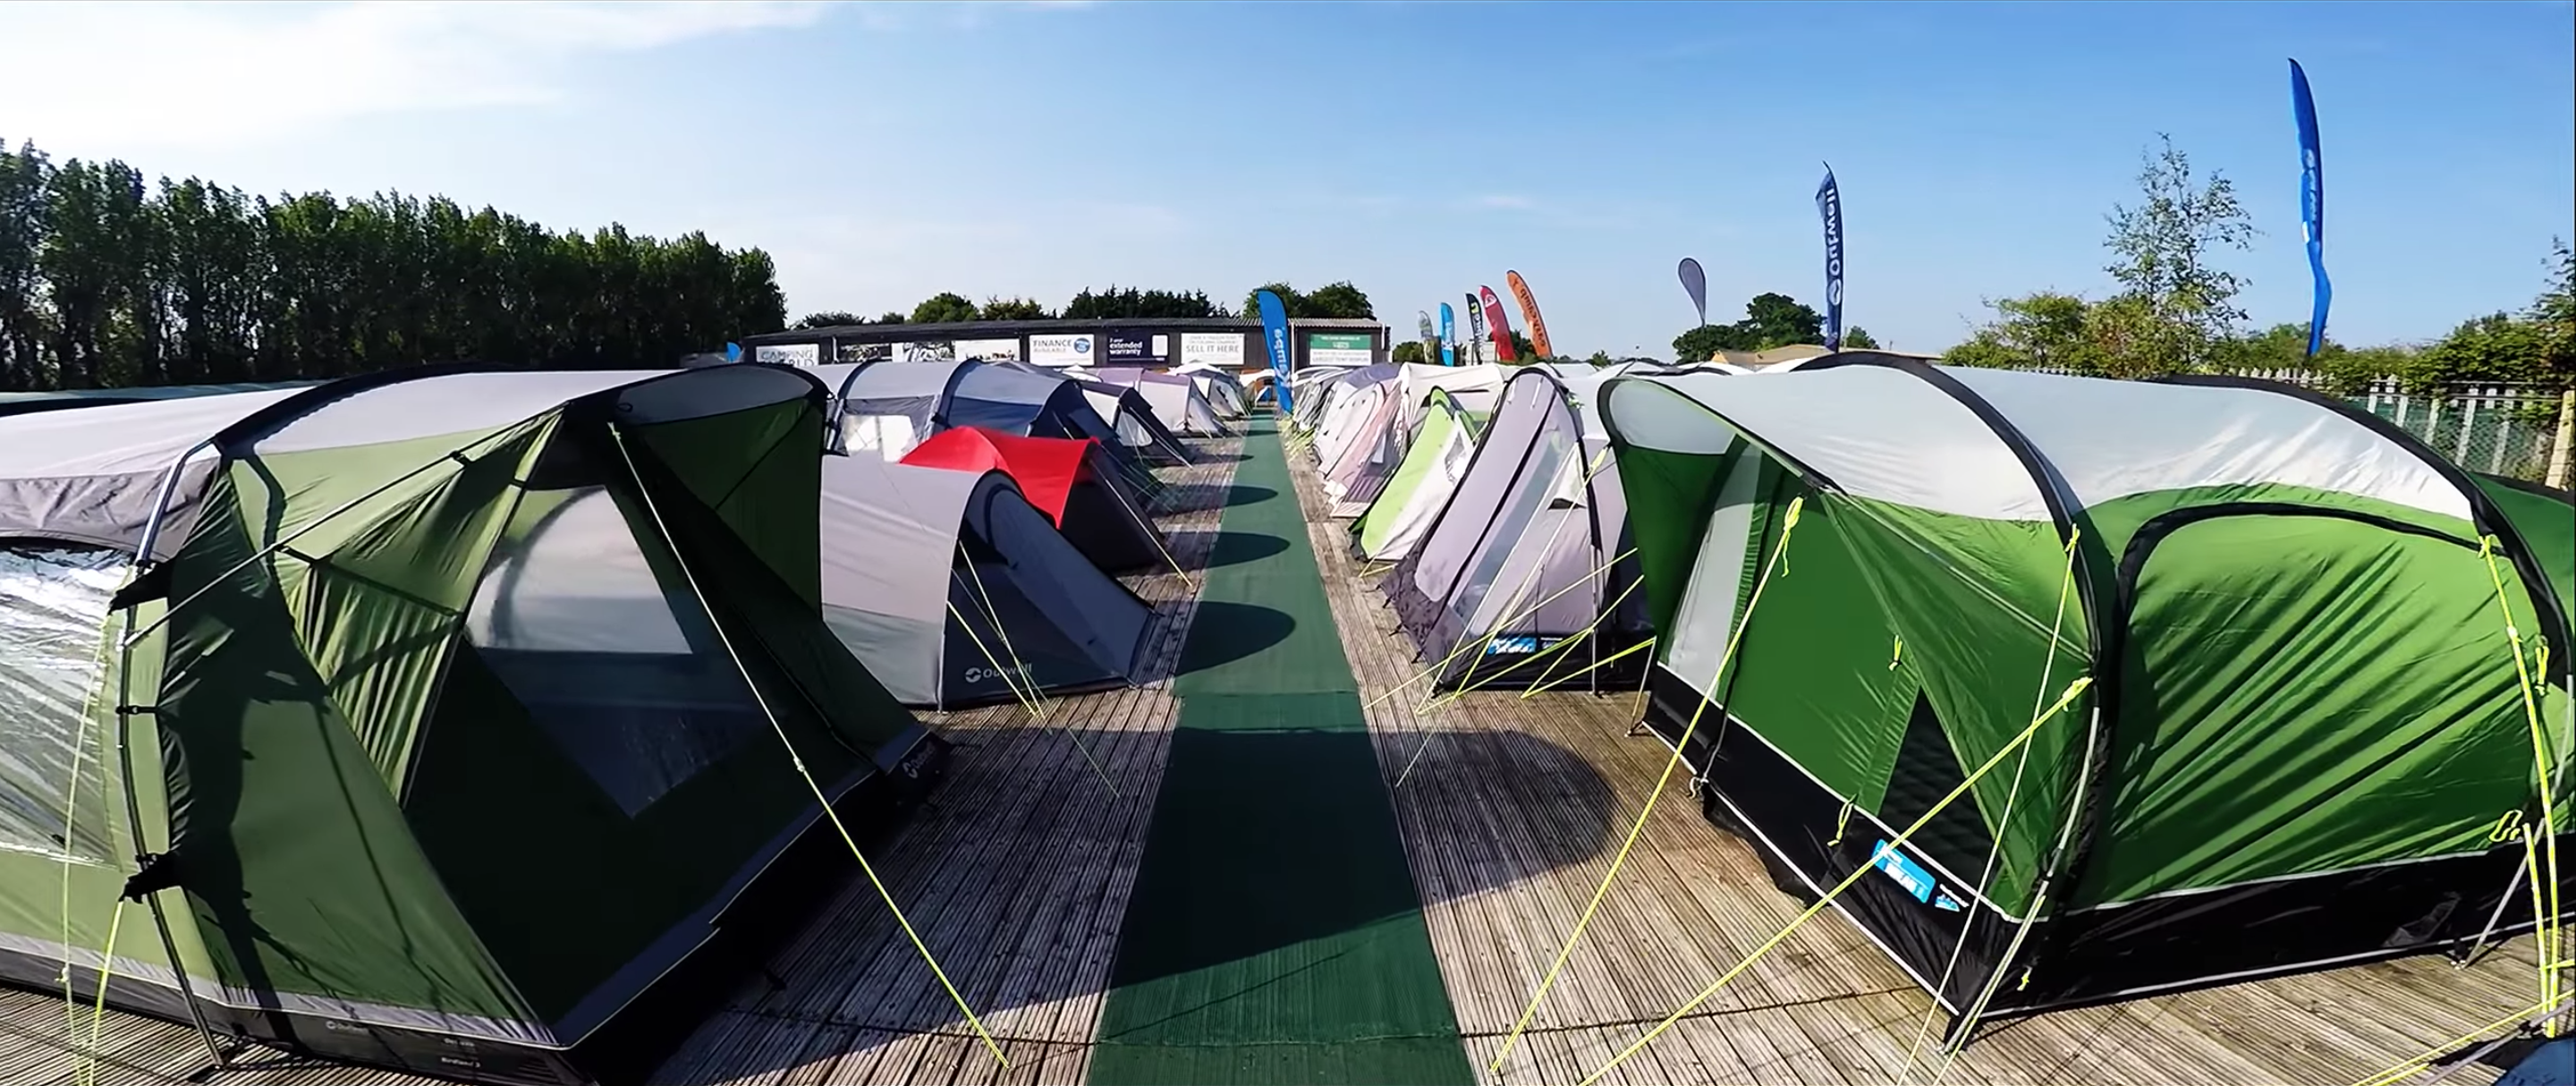 We display everything from 1 man hiking tents to large 10 man family c&ing tents. We guarantee no other tent show will offer you the range of products ... & Tent Shows